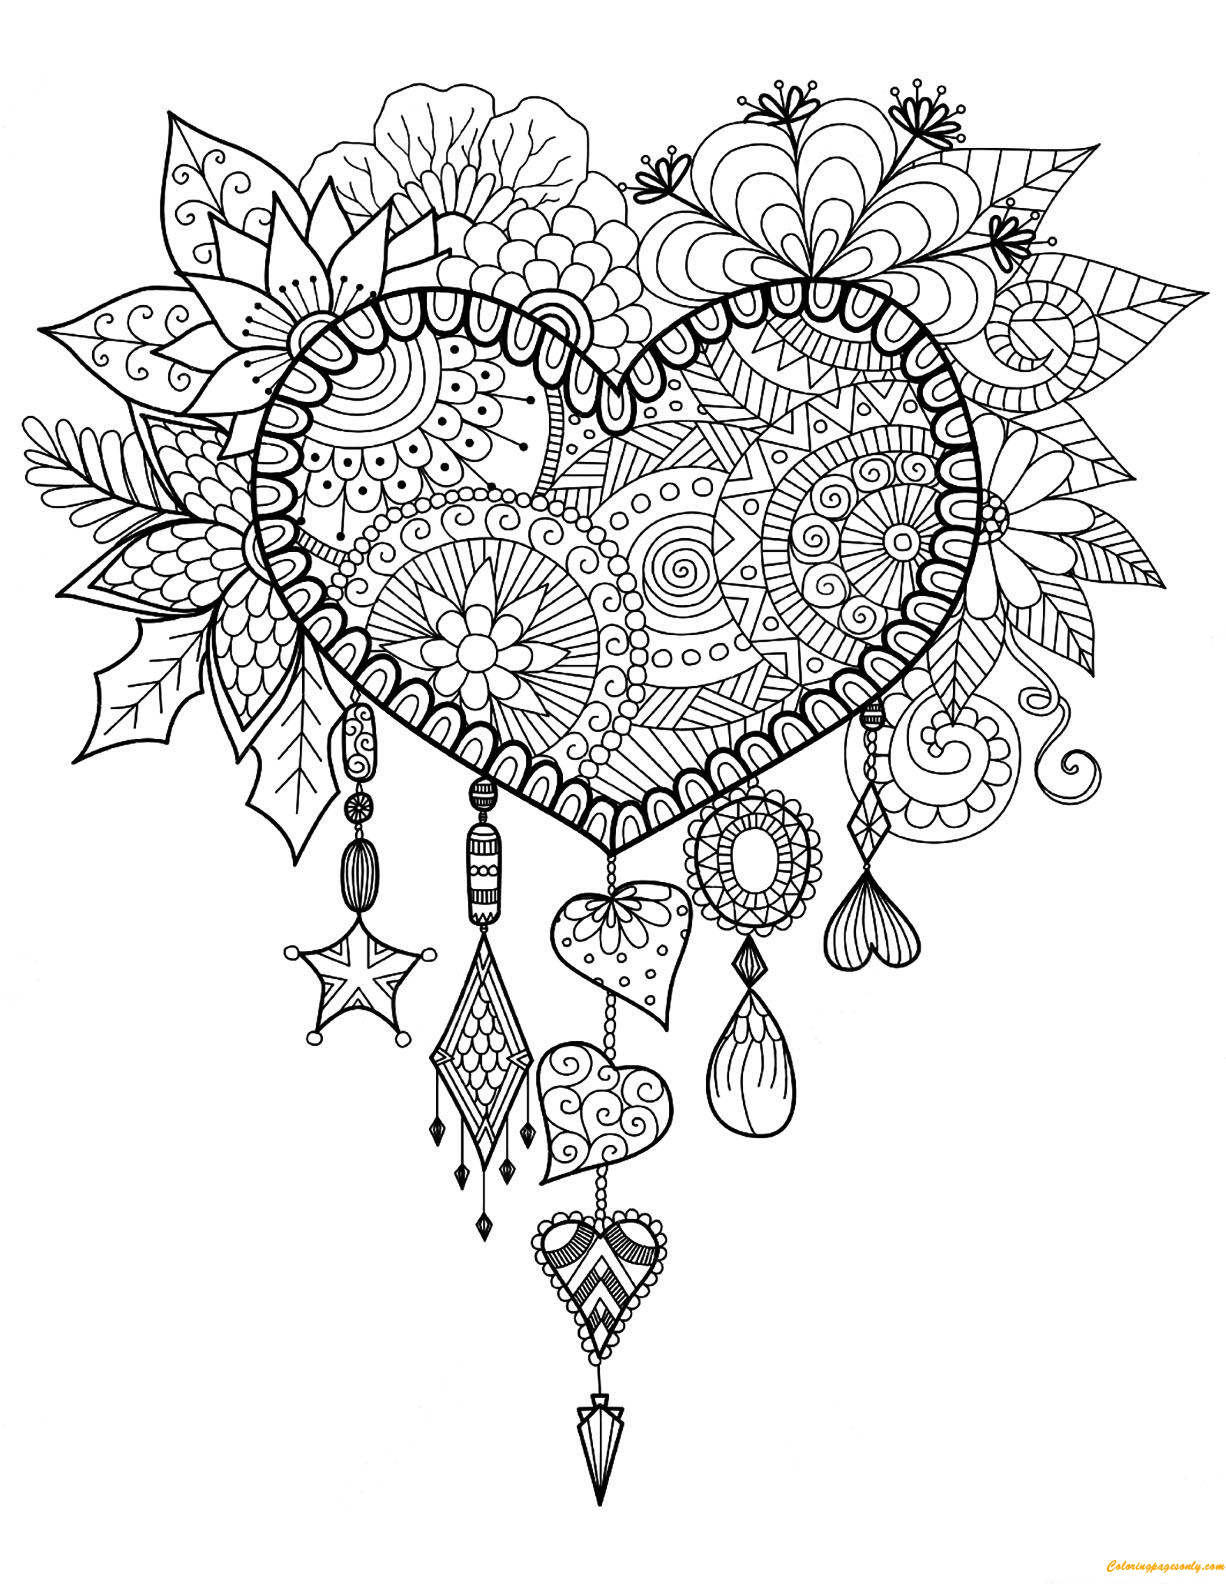 Dreams Catcher Heart Coloring Page Free Coloring Pages line